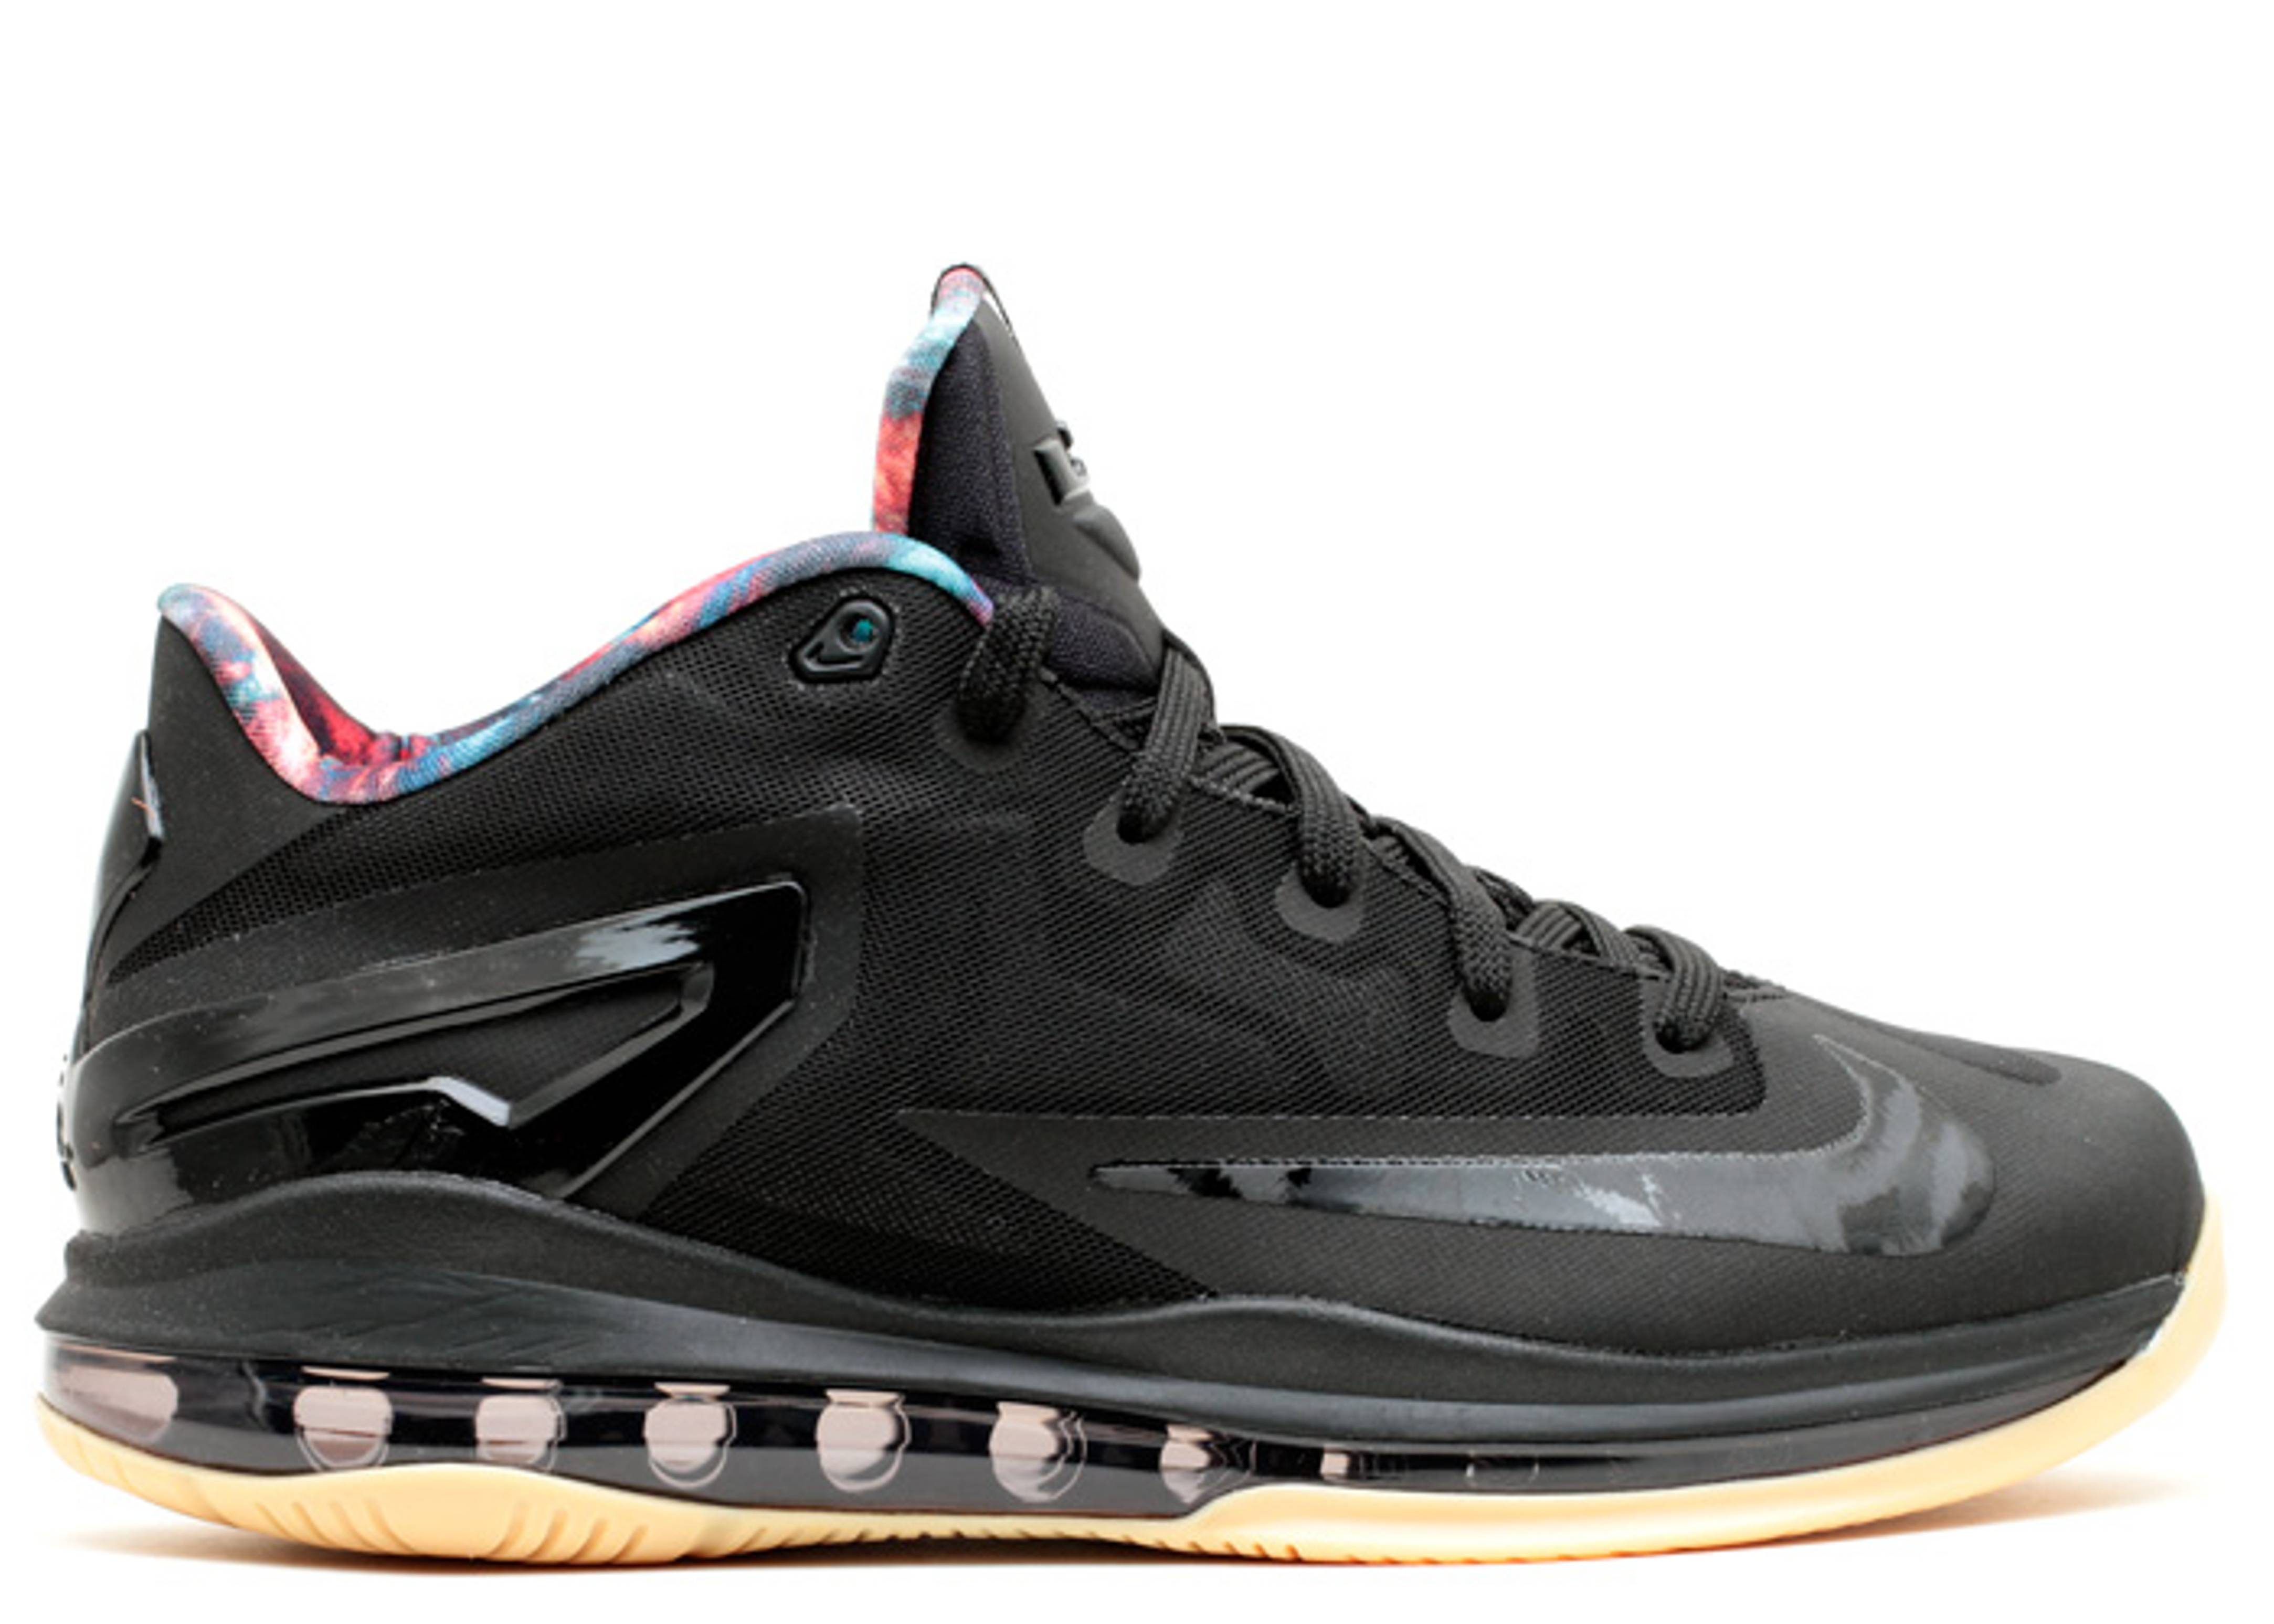 fca3767e357 purchase mens nike lebron 11 lows c59b2 c1464  norway max lebron 11 low gs  gum fb068 a5c83